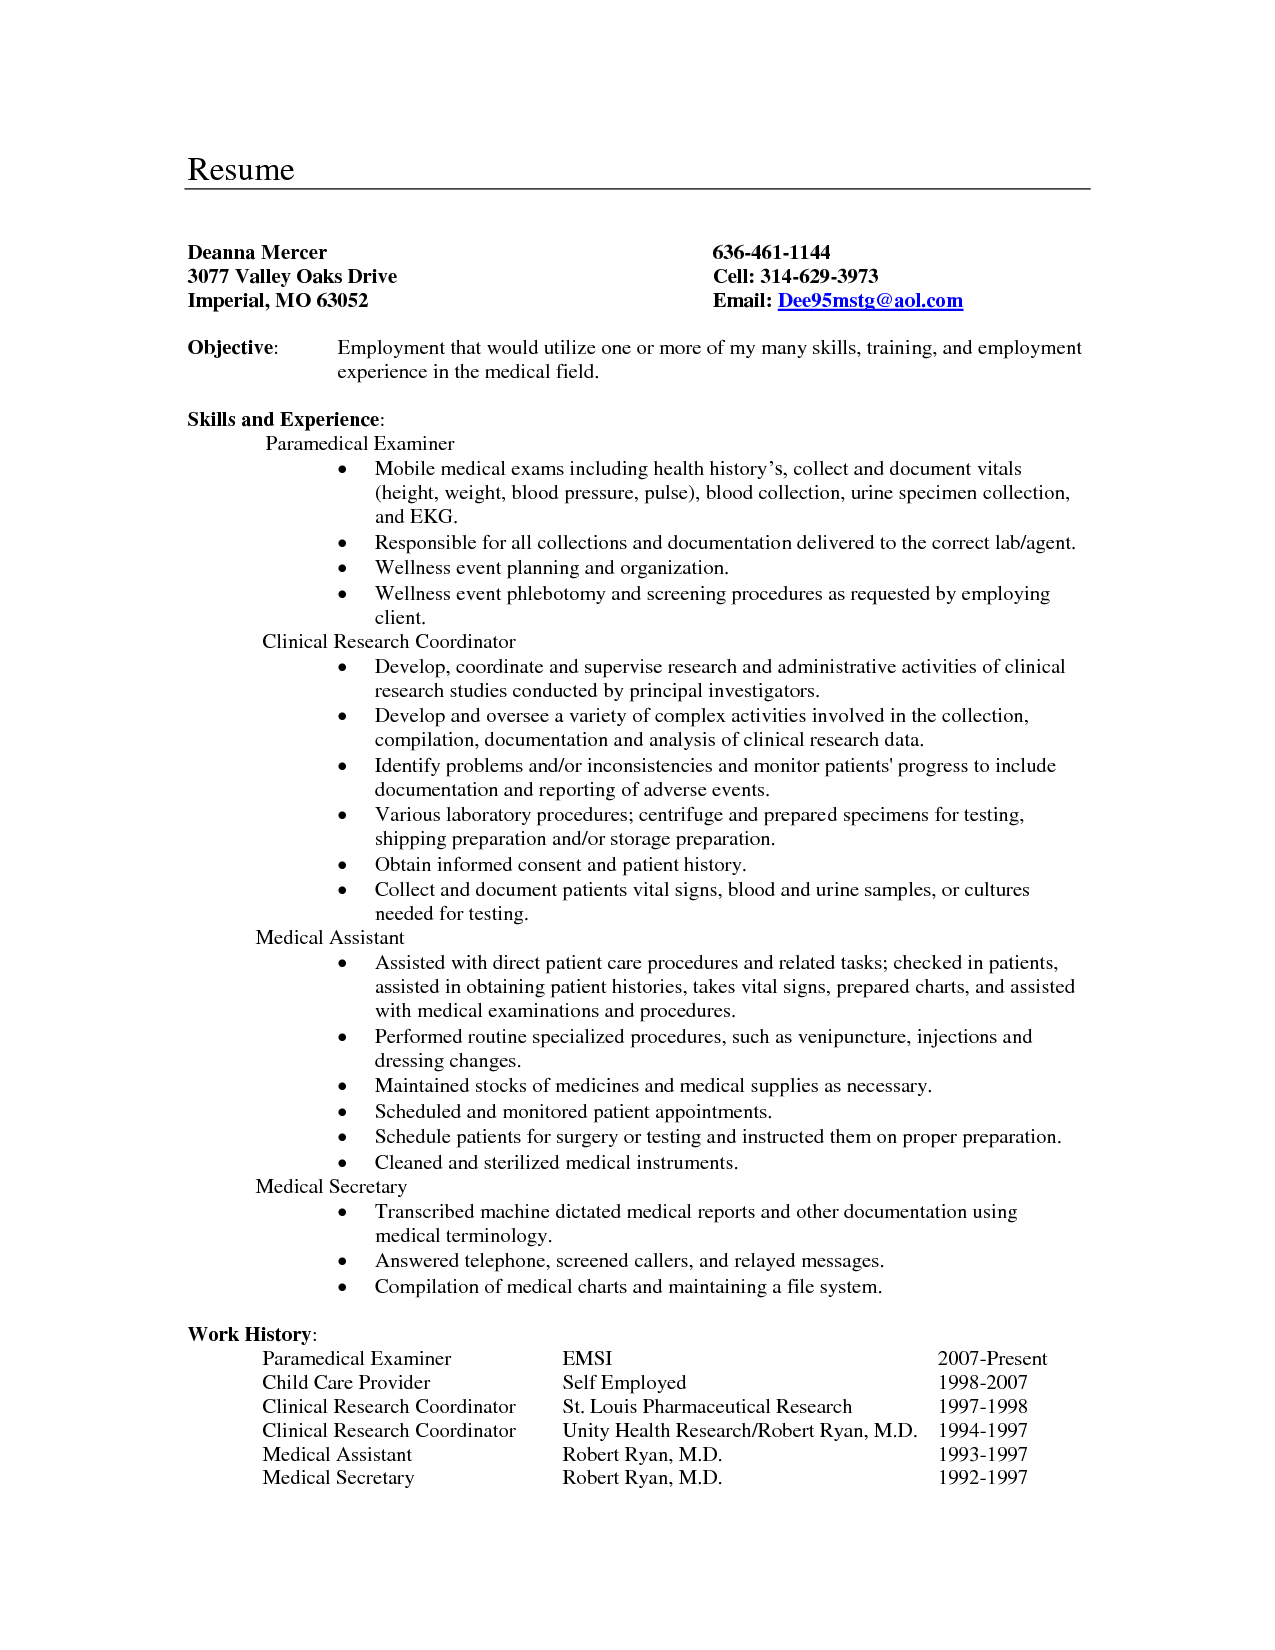 Resume Objective For Administrative Assistant Medical Secretary Resume Objective Examples  North Carolina